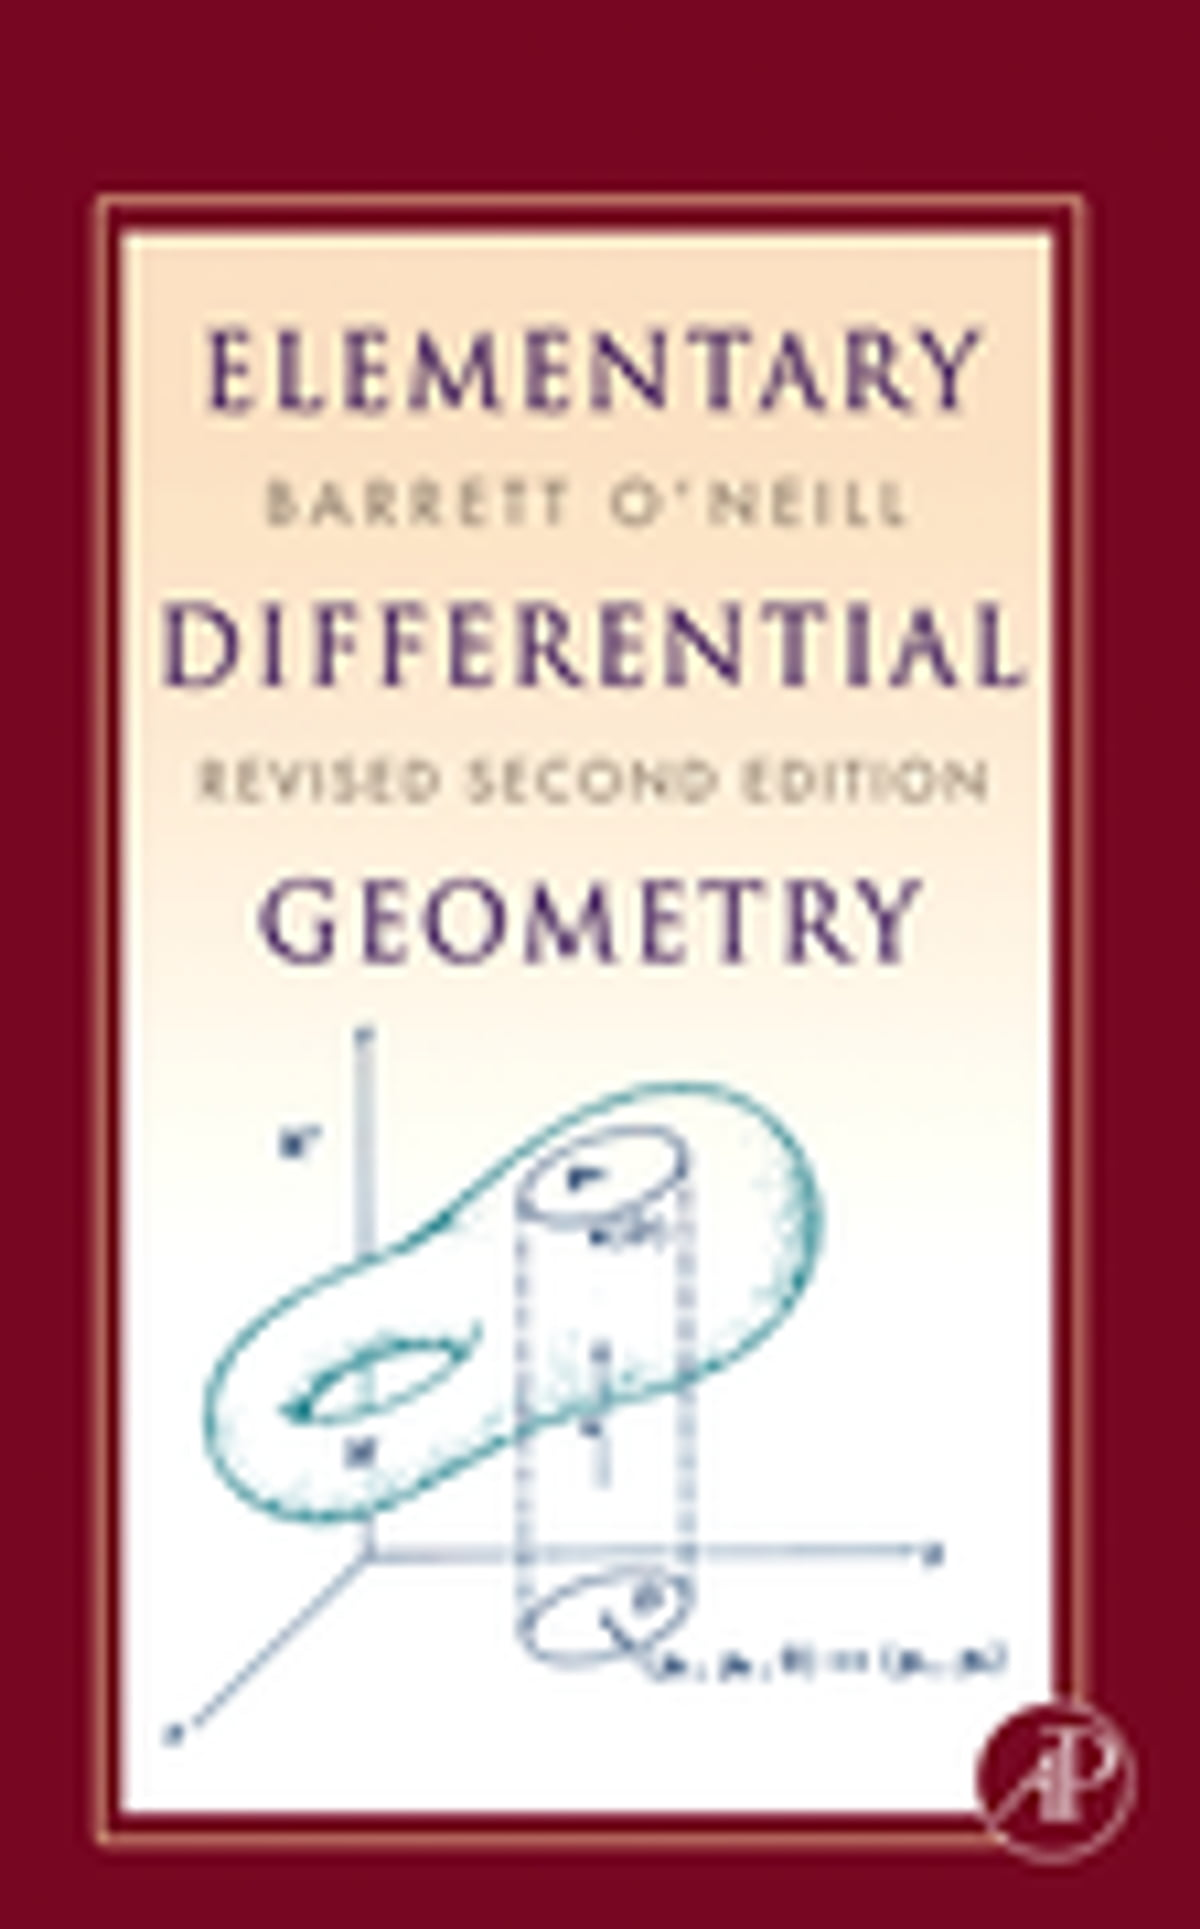 Elementary Differential Geometry, Revised 2nd Edition eBook by Barrett  O'Neill - 9780080505428 | Rakuten Kobo